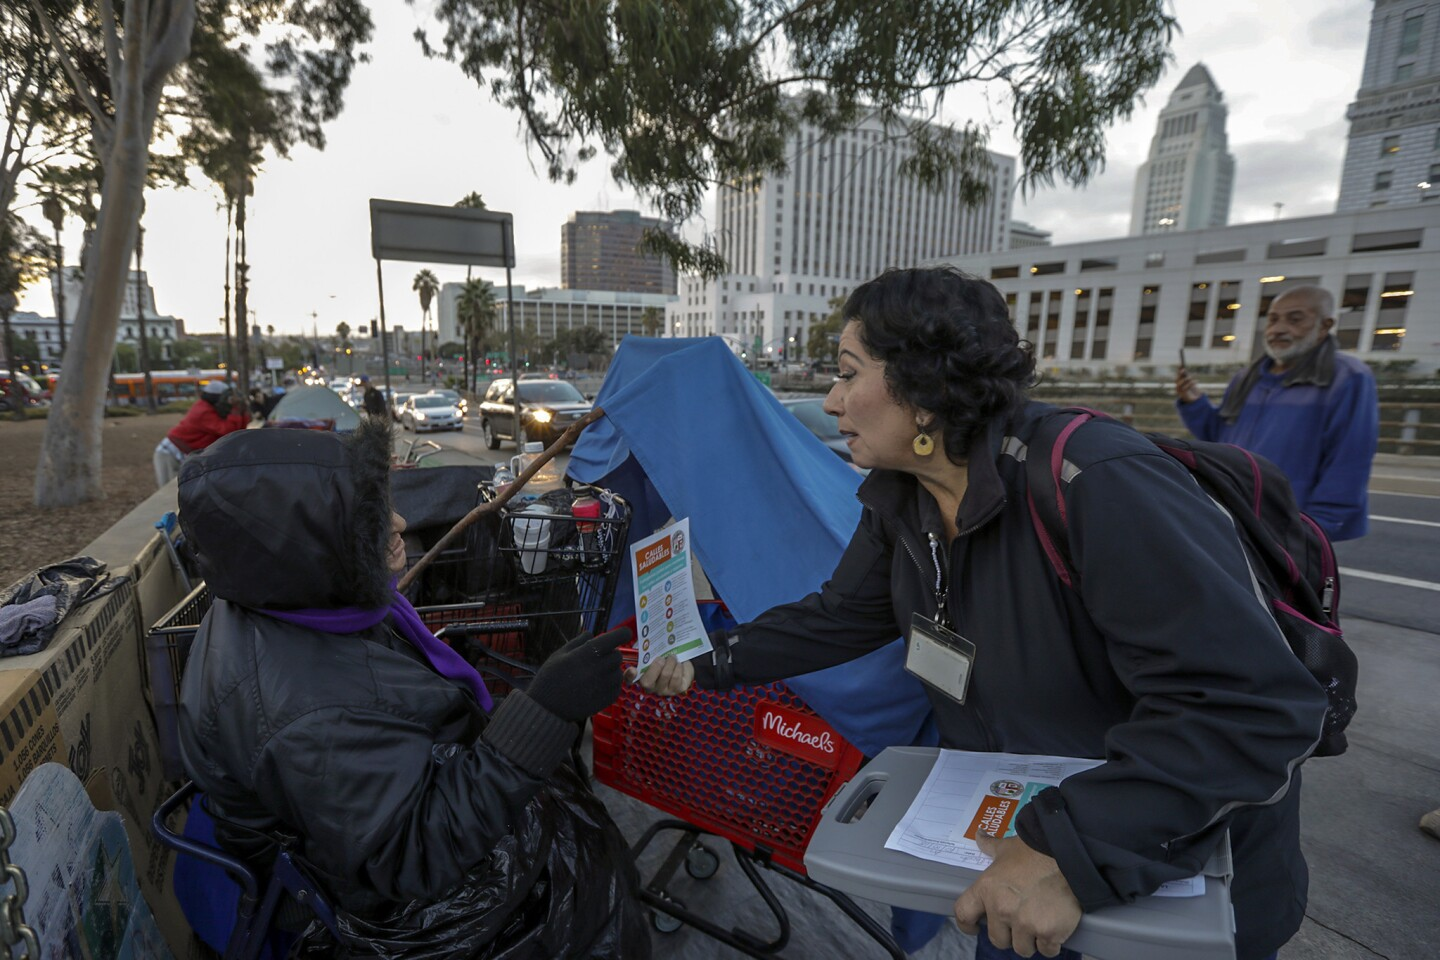 Homeless tent camps